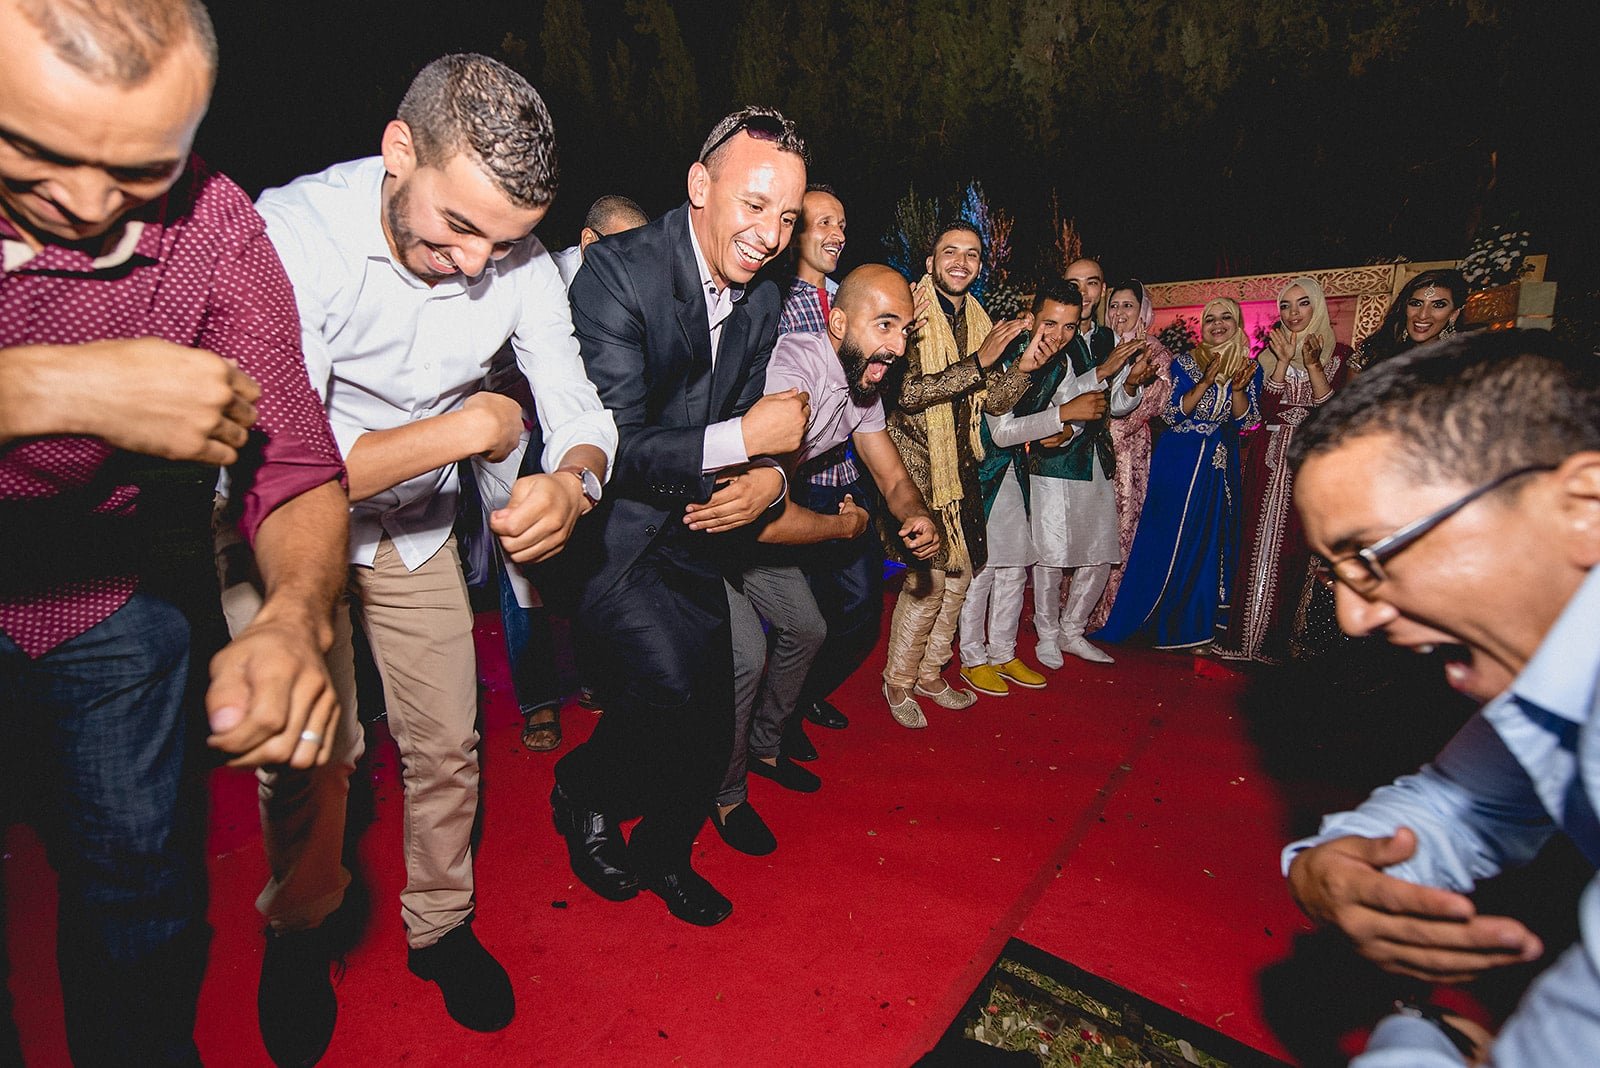 Berber guests dancing at a destination wedding in Marrakech